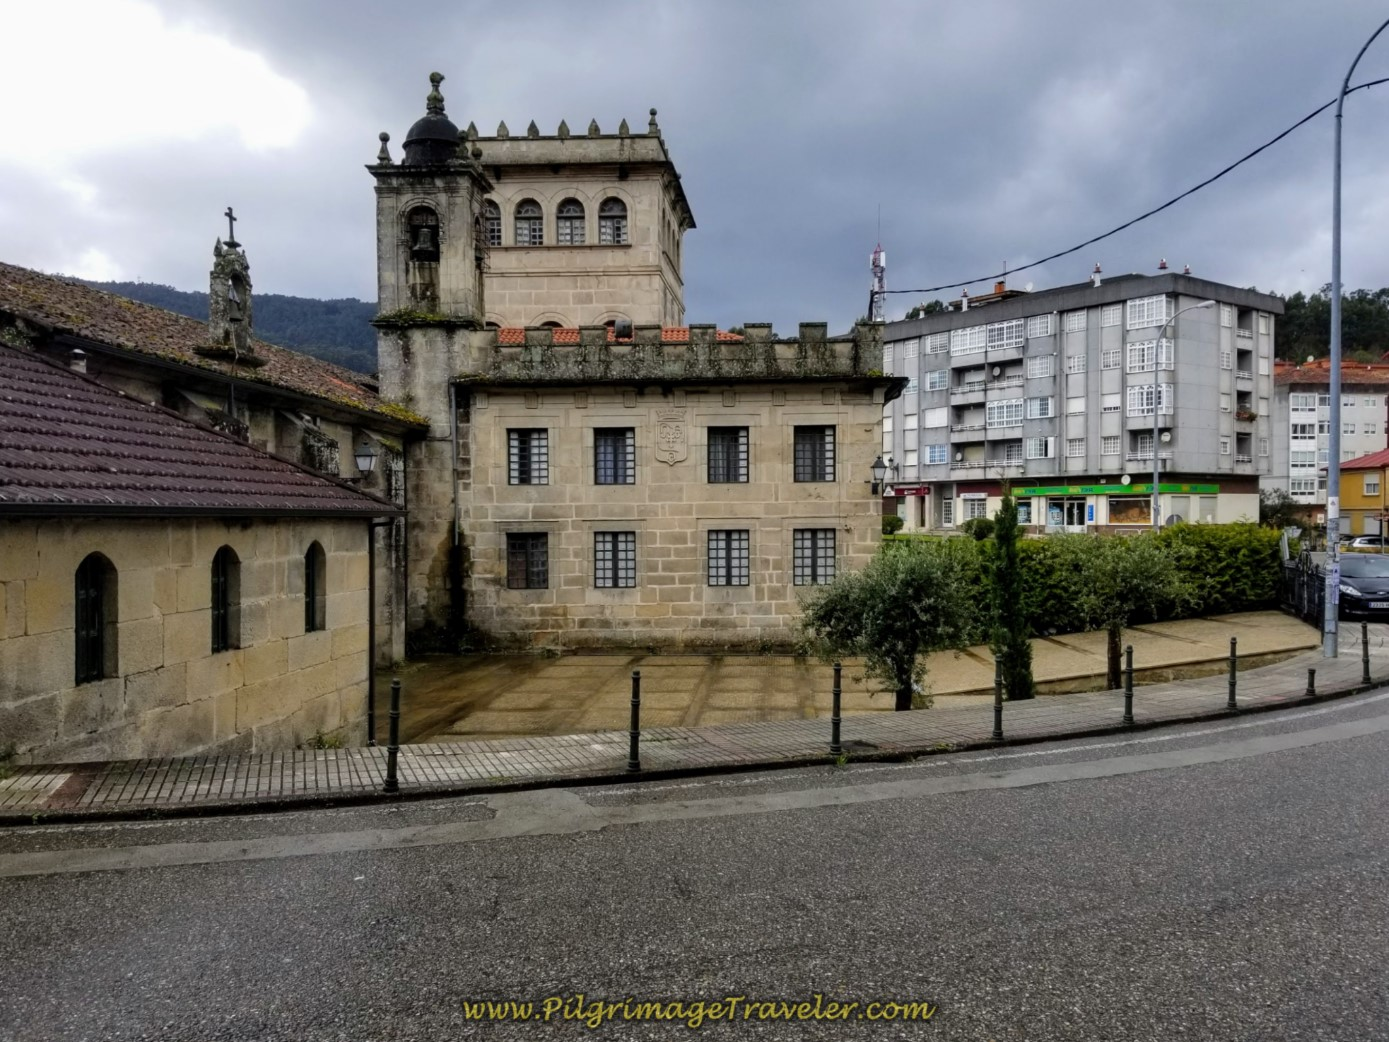 Convento de Vilavella on day twenty-one of the central route of the Portuguese Camino